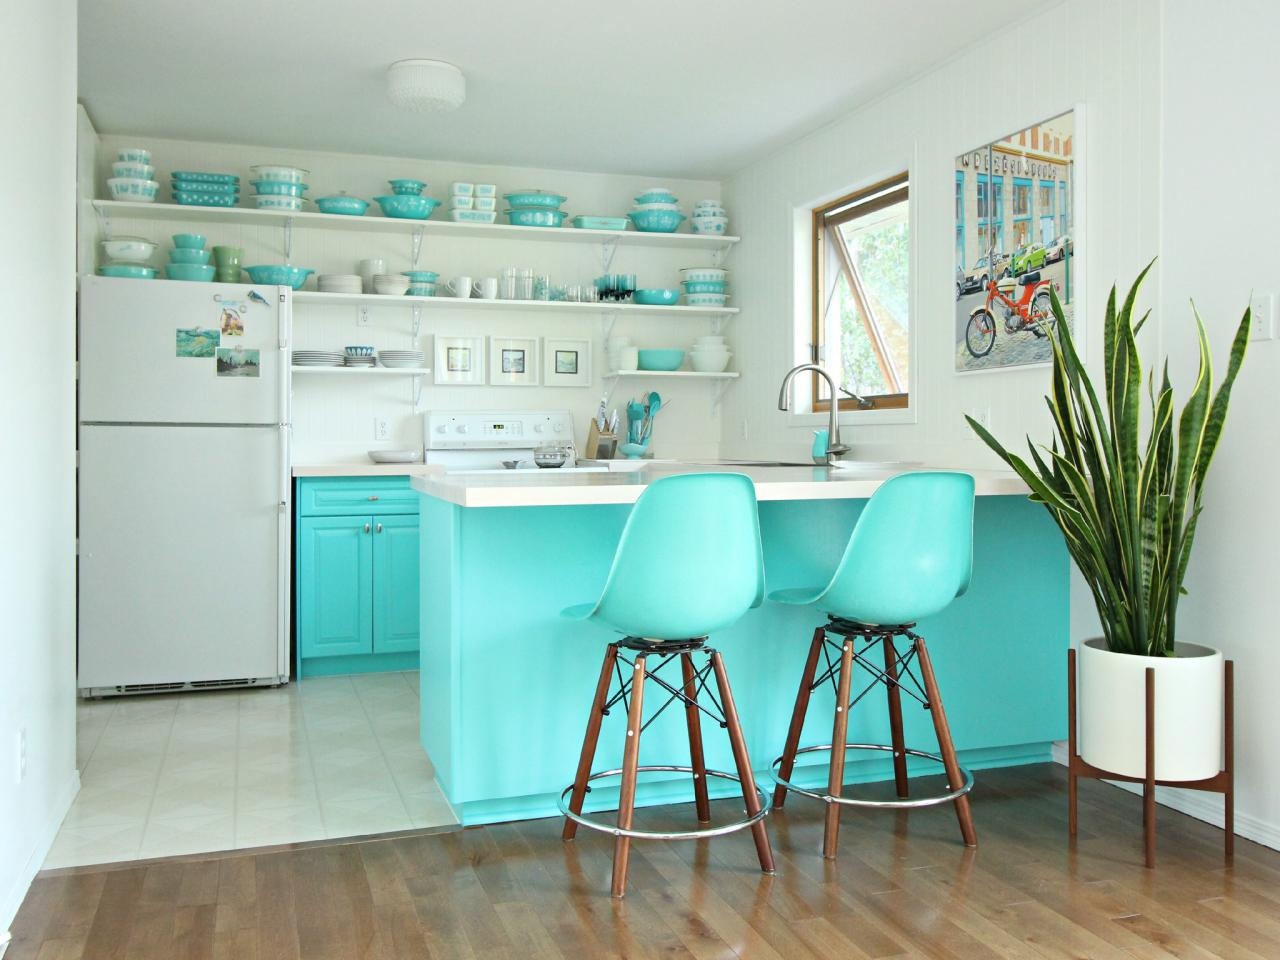 Colorful Painted Kitchen Cabinet Ideas | HGTV\'s Decorating & Design ...